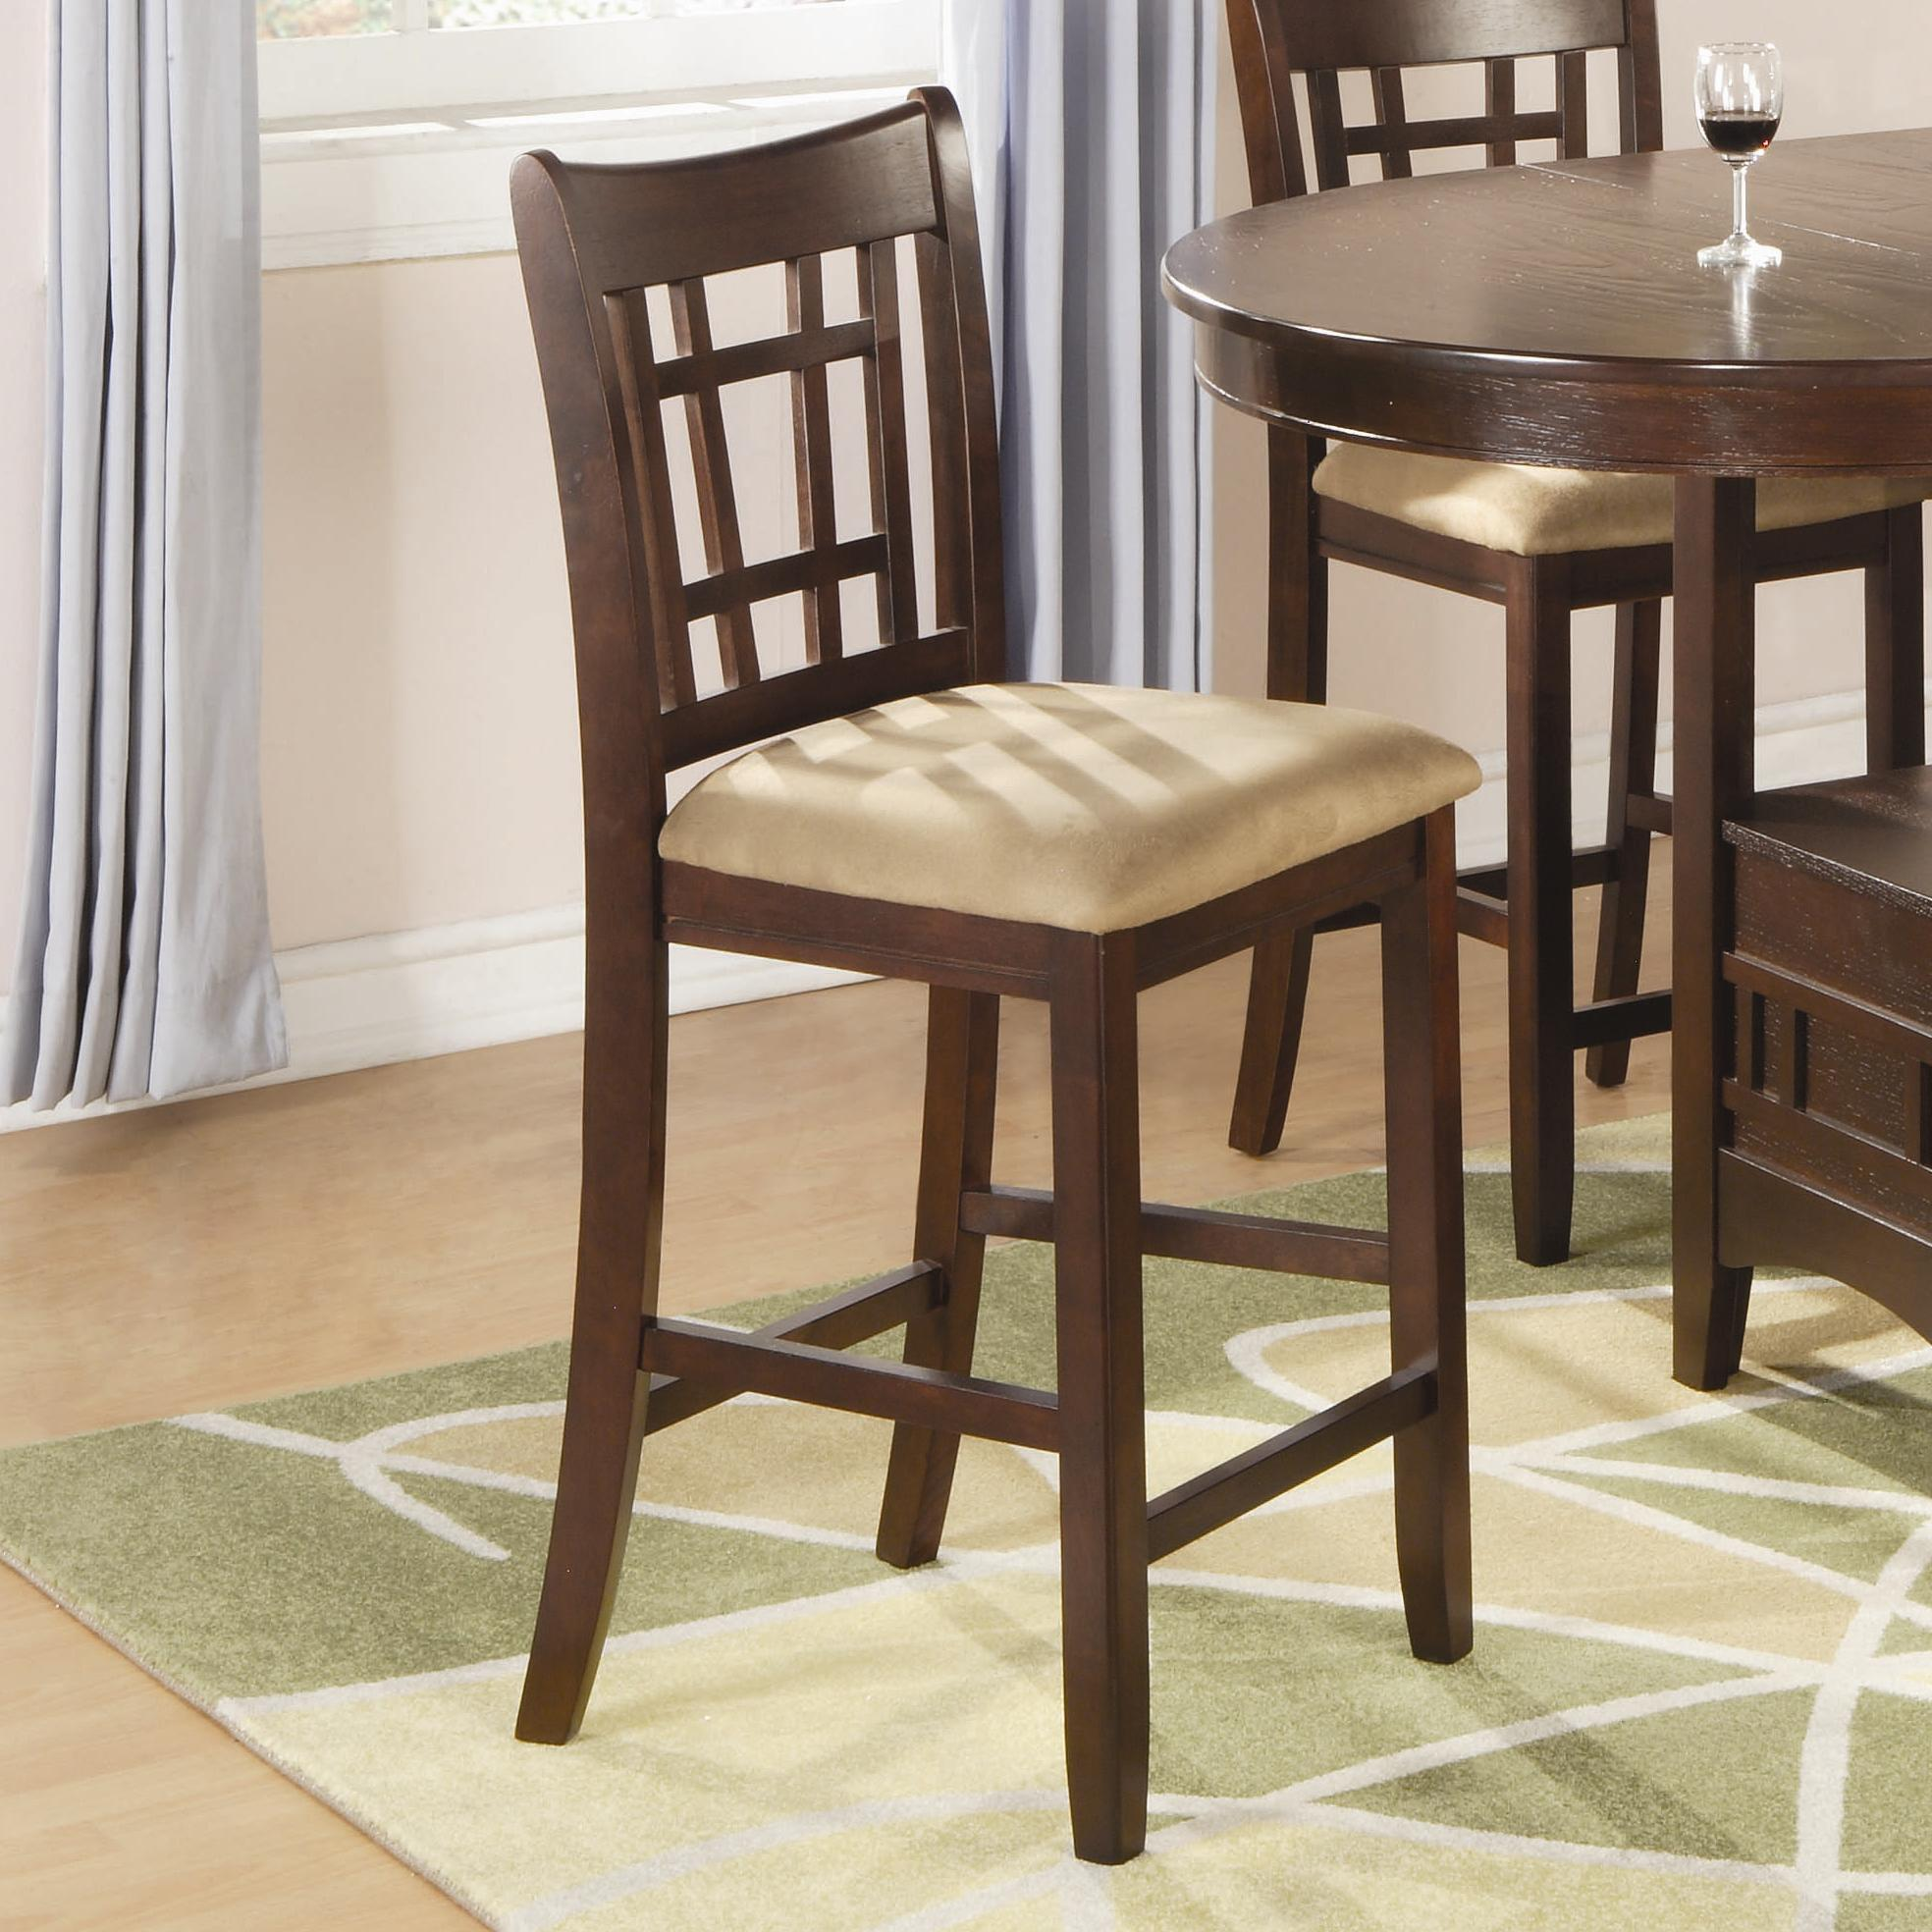 Coaster Lavon 100889n 24 Inch Bar Stool Dunk Bright